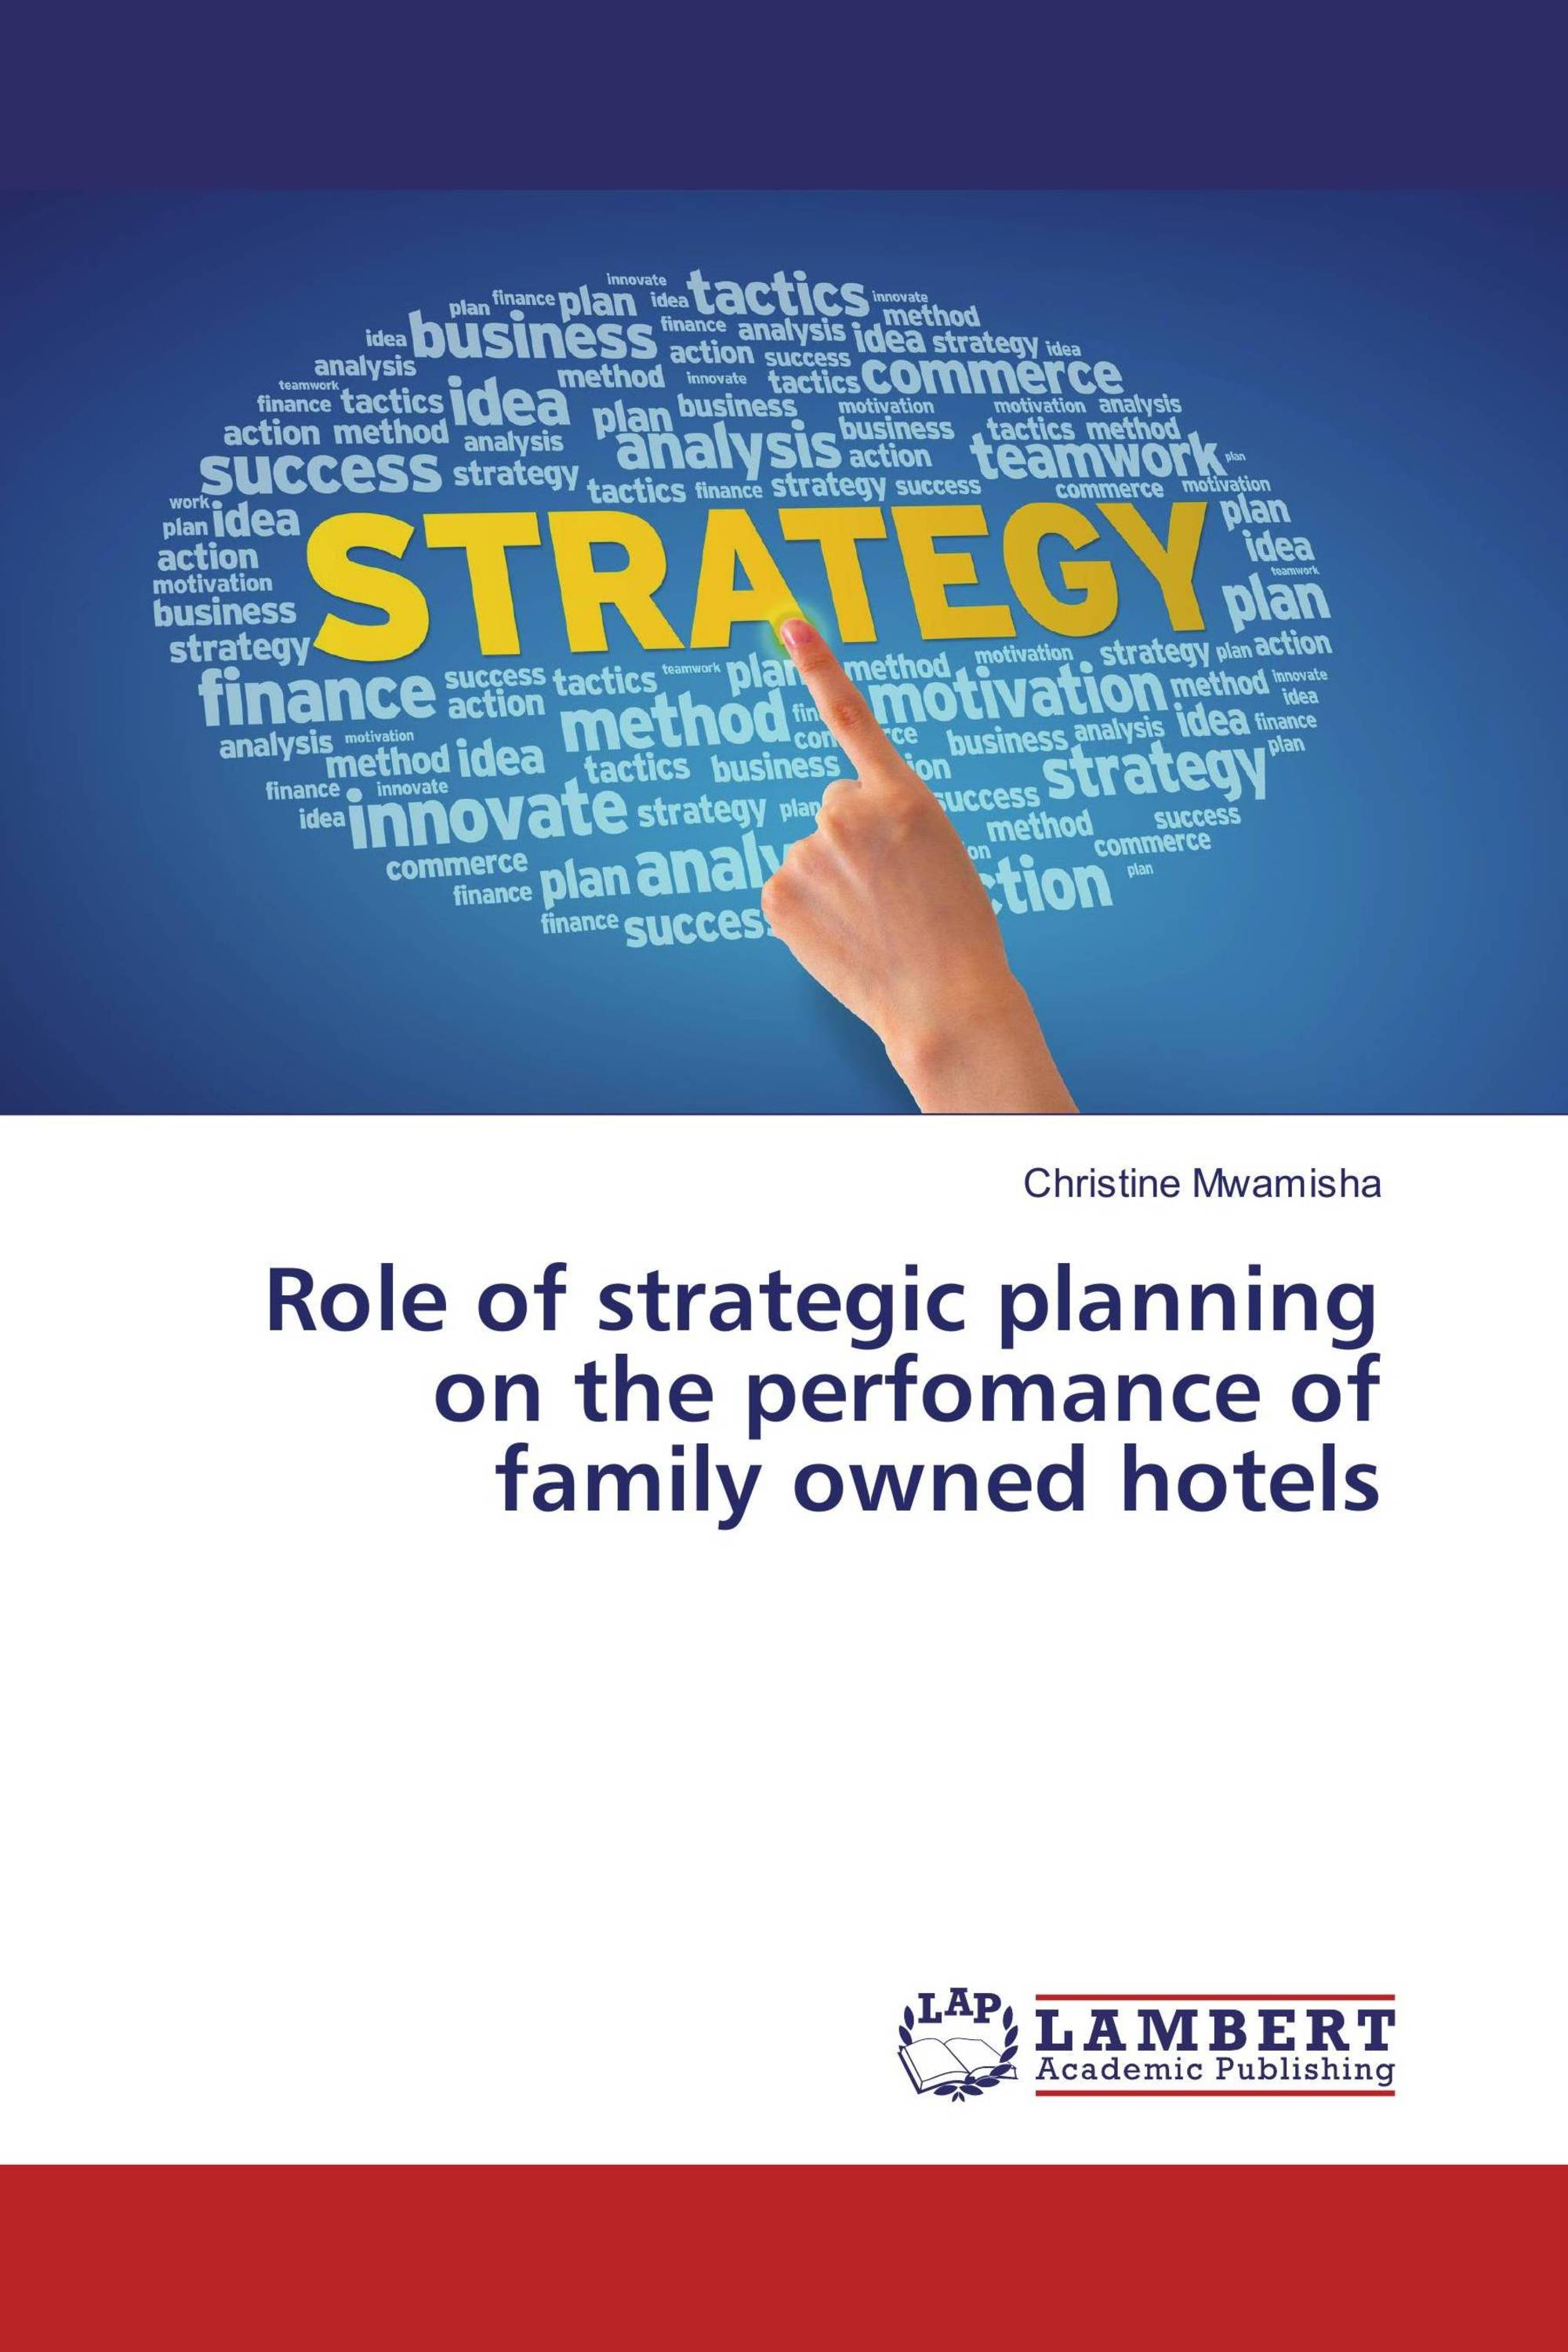 the role of strategic planning Our findings indicate that formal strategic planning does indeed evolve along similar lines in different companies, albeit at varying rates of progress.